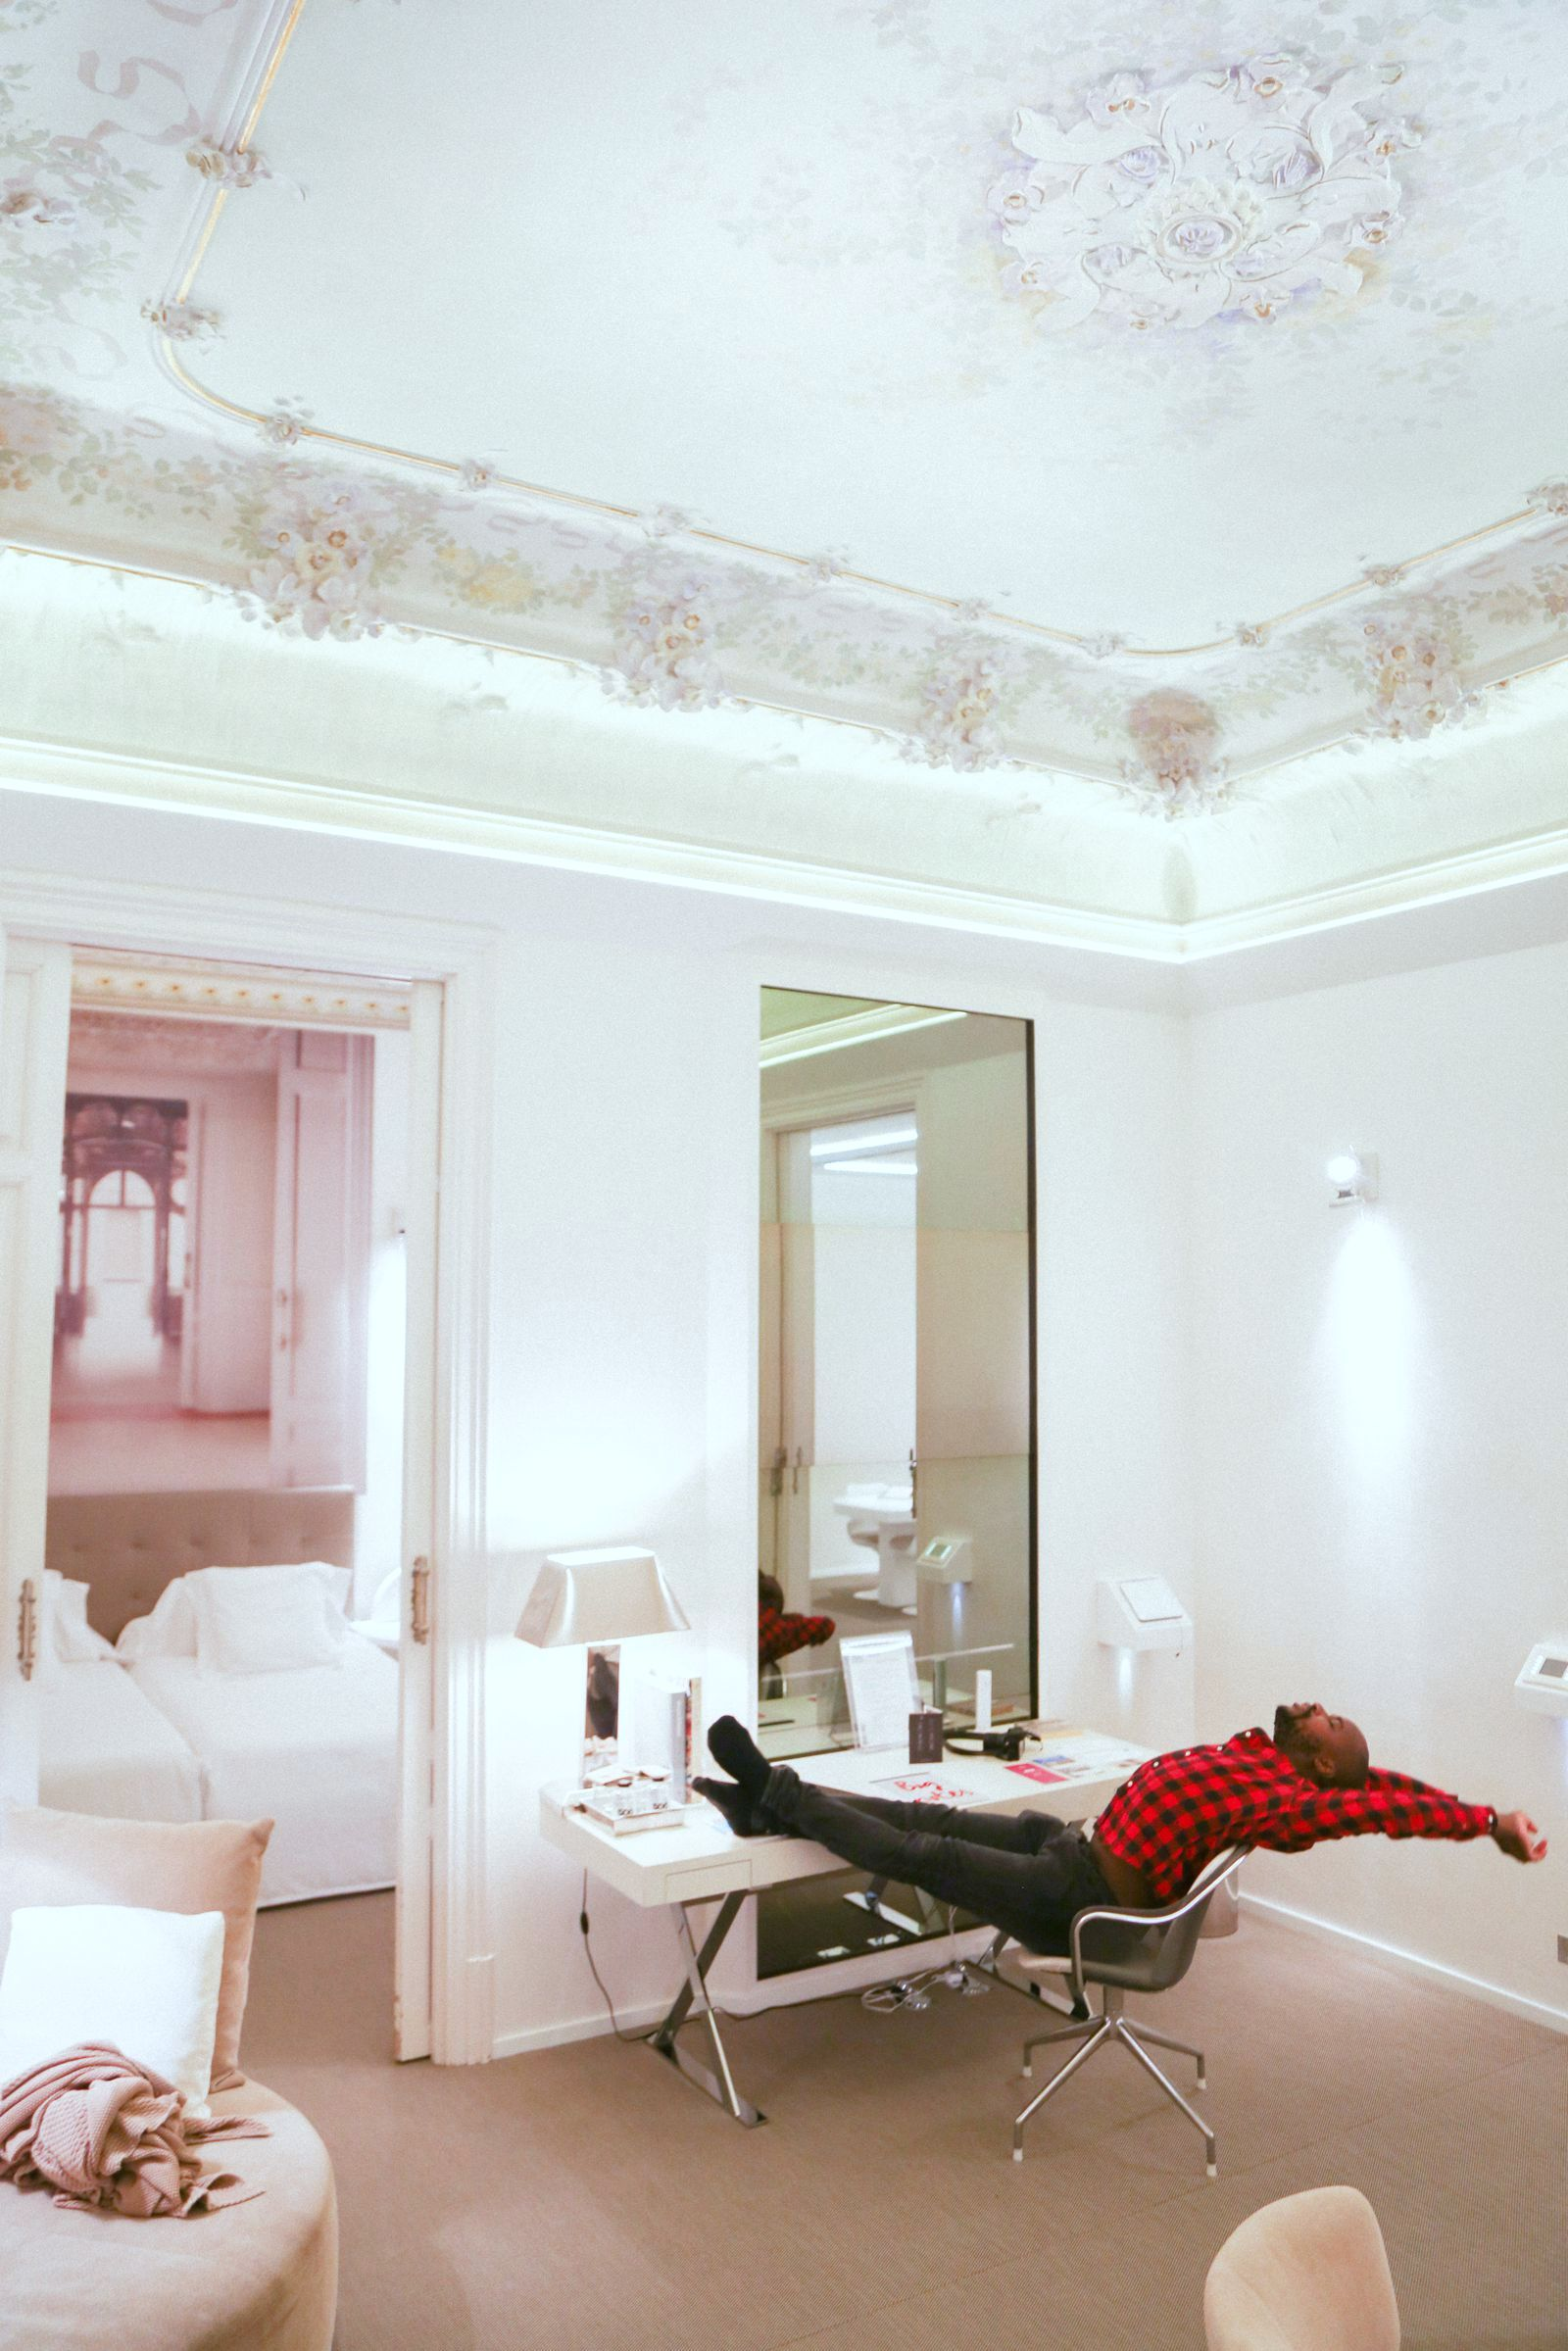 El Palauet Living: The Most Amazing Hotel To Stay In Barcelona, Spain (44)